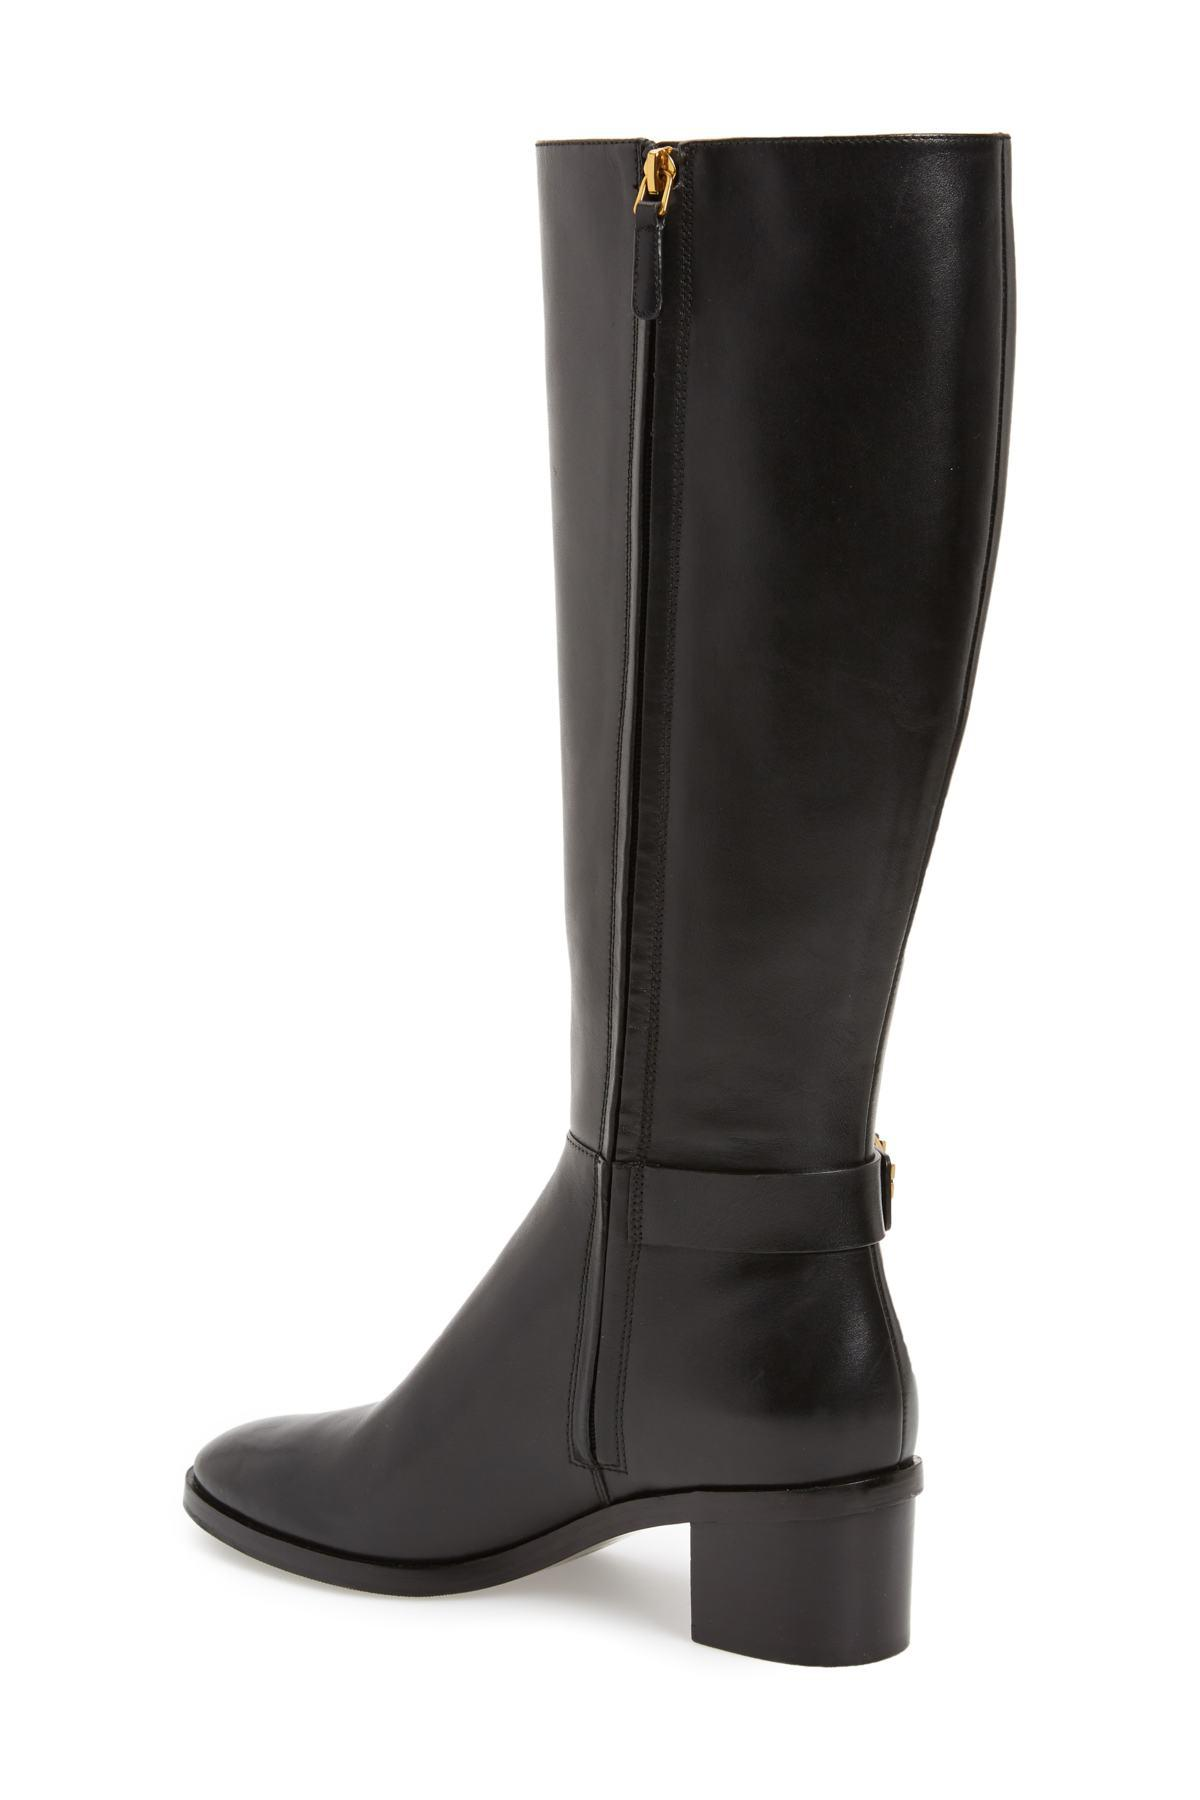 951496b51d96 Tory Burch Black Boots Nordstrom Rack - The Best Boots In The World